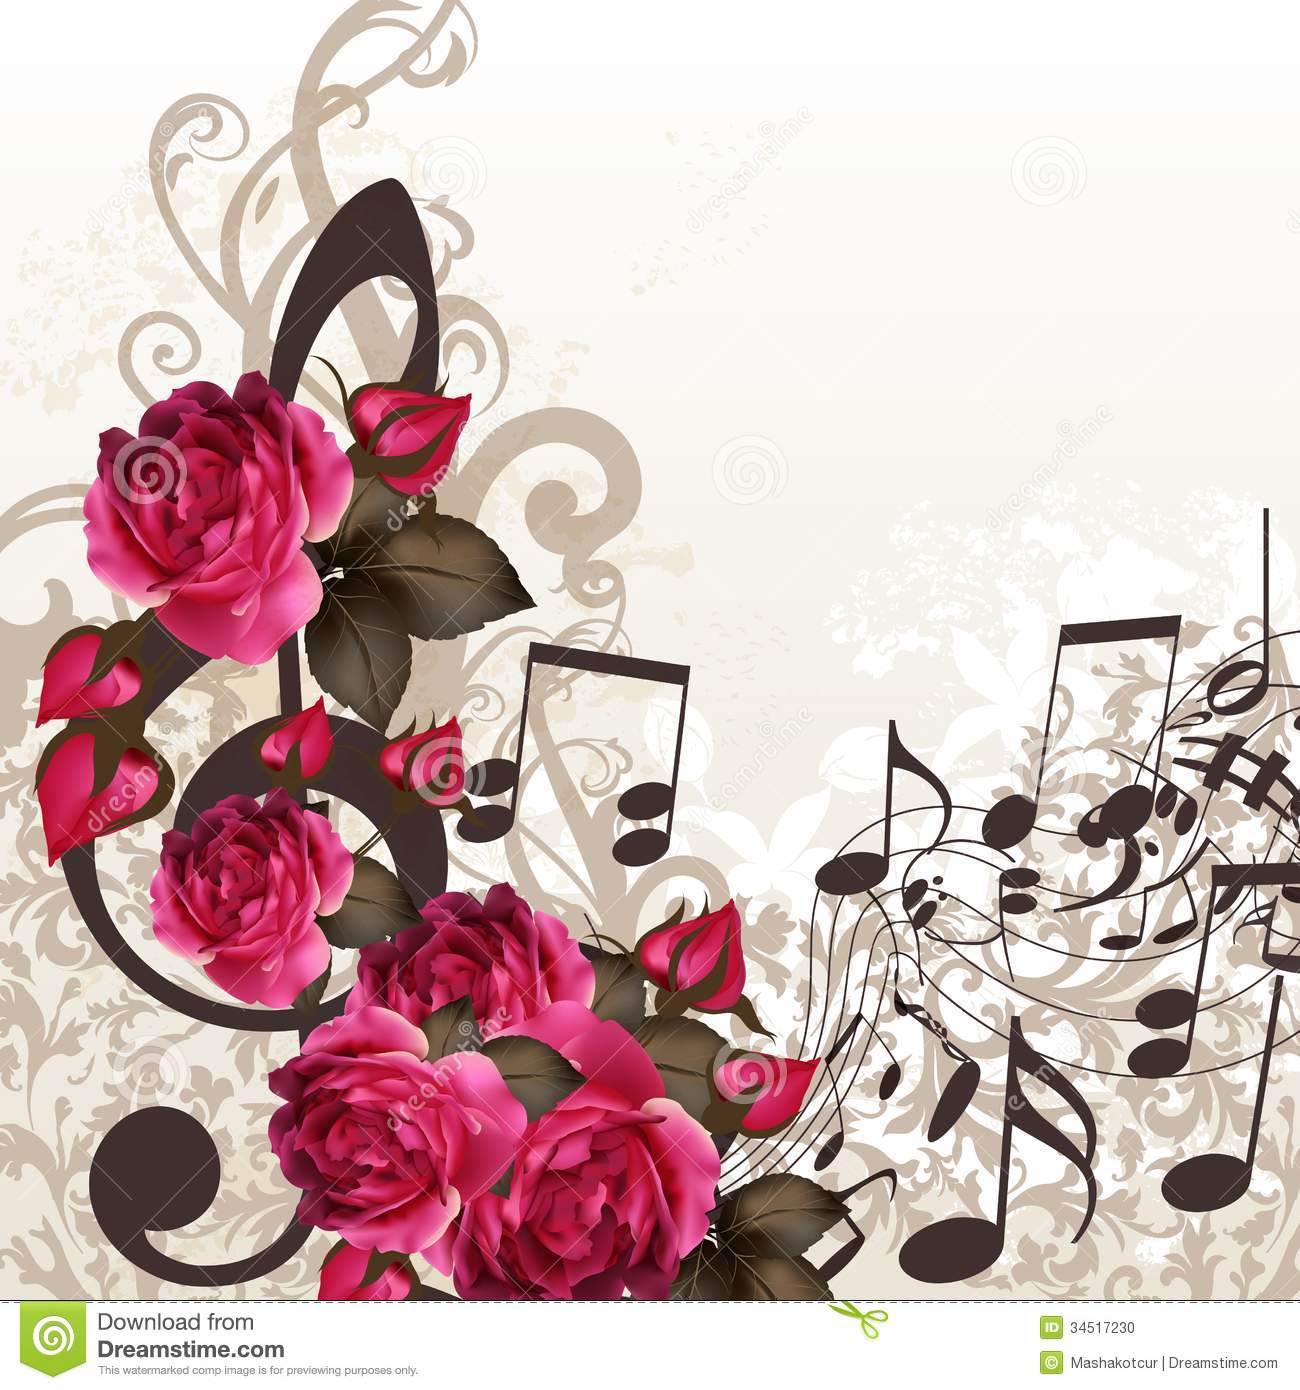 music notes backgrounds floral - photo #14